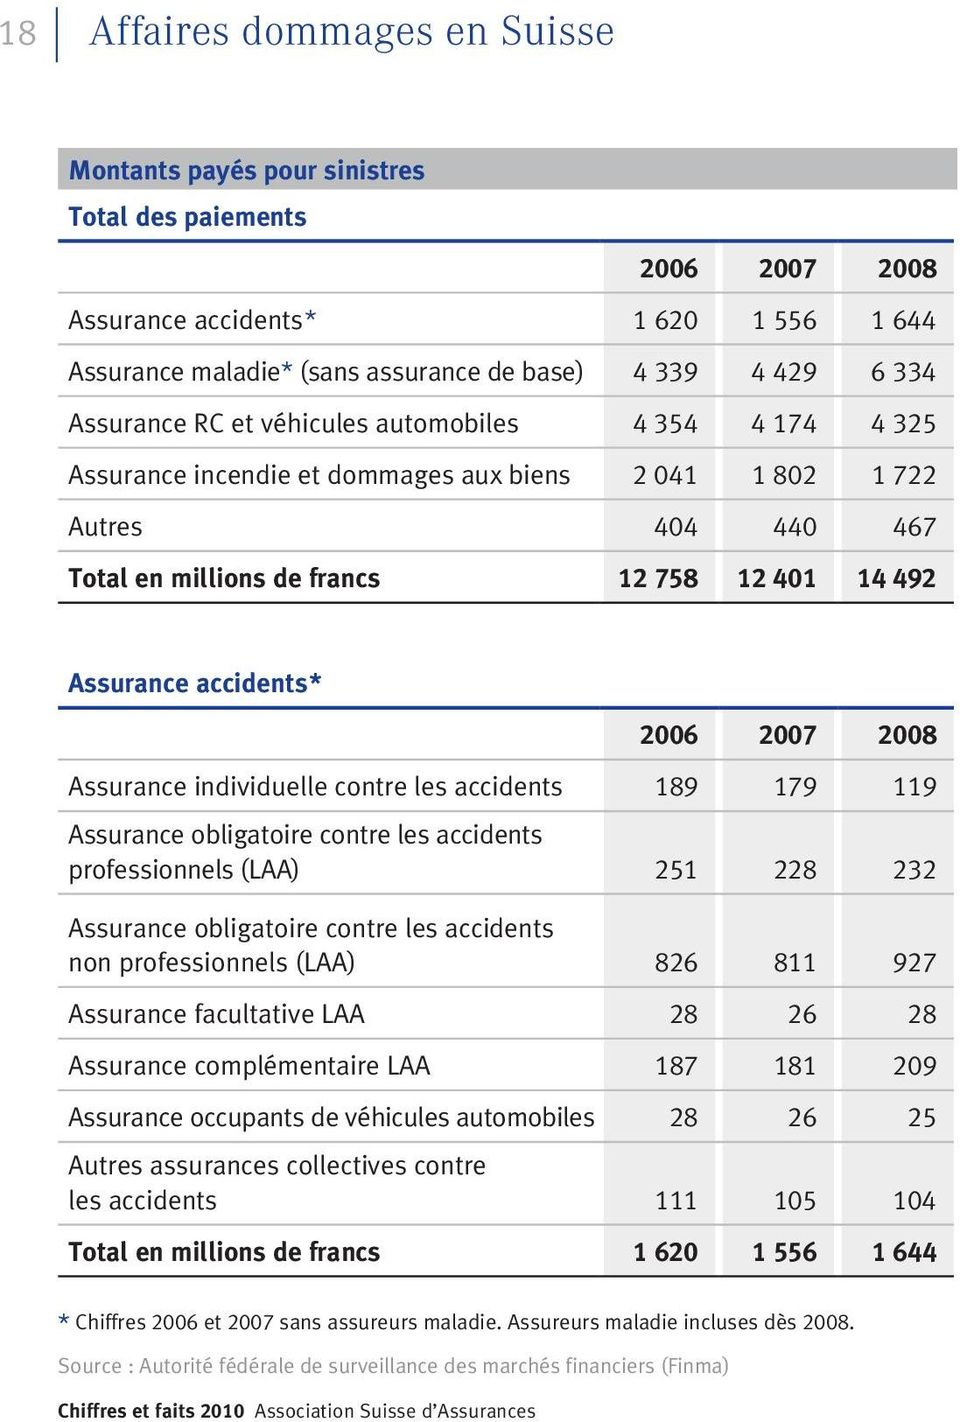 Assurance accidents* Assurance individuelle contre les accidents 189 179 119 professionnels (LAA) 251 228 232 non professionnels (LAA) 826 811 927 Assurance facultative LAA 28 26 28